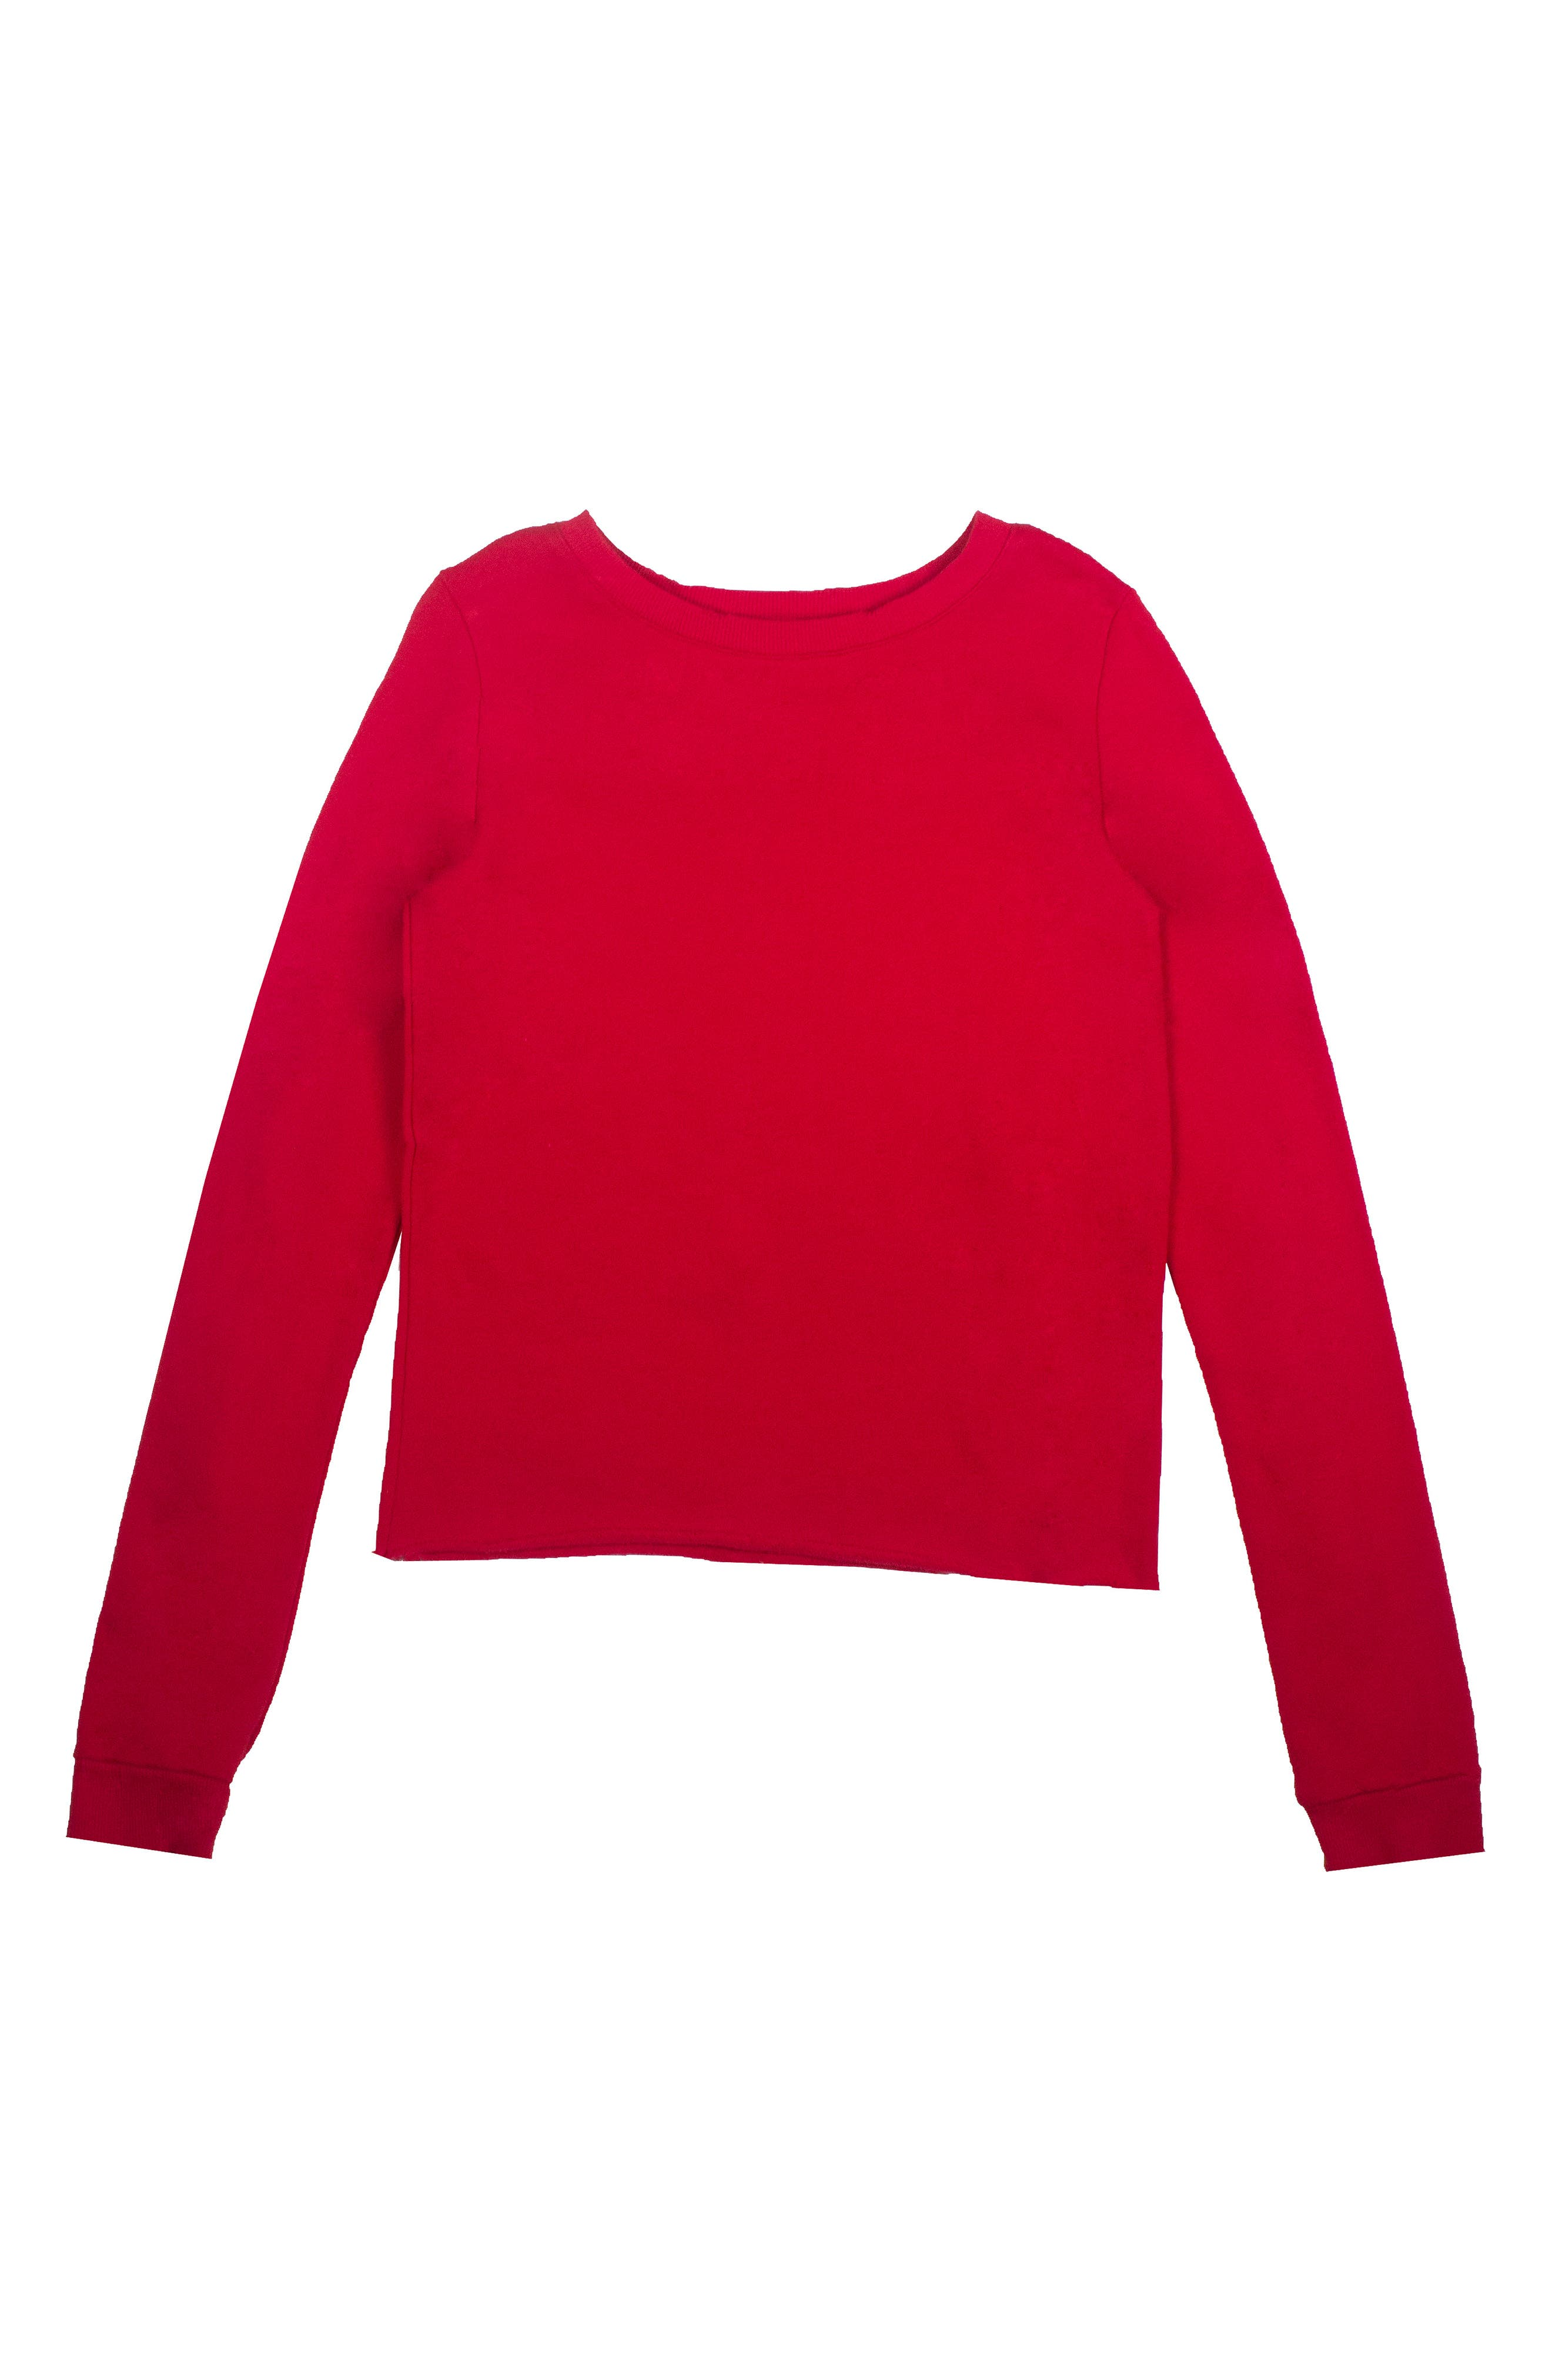 Ruffle Sweatshirt,                             Alternate thumbnail 2, color,                             600